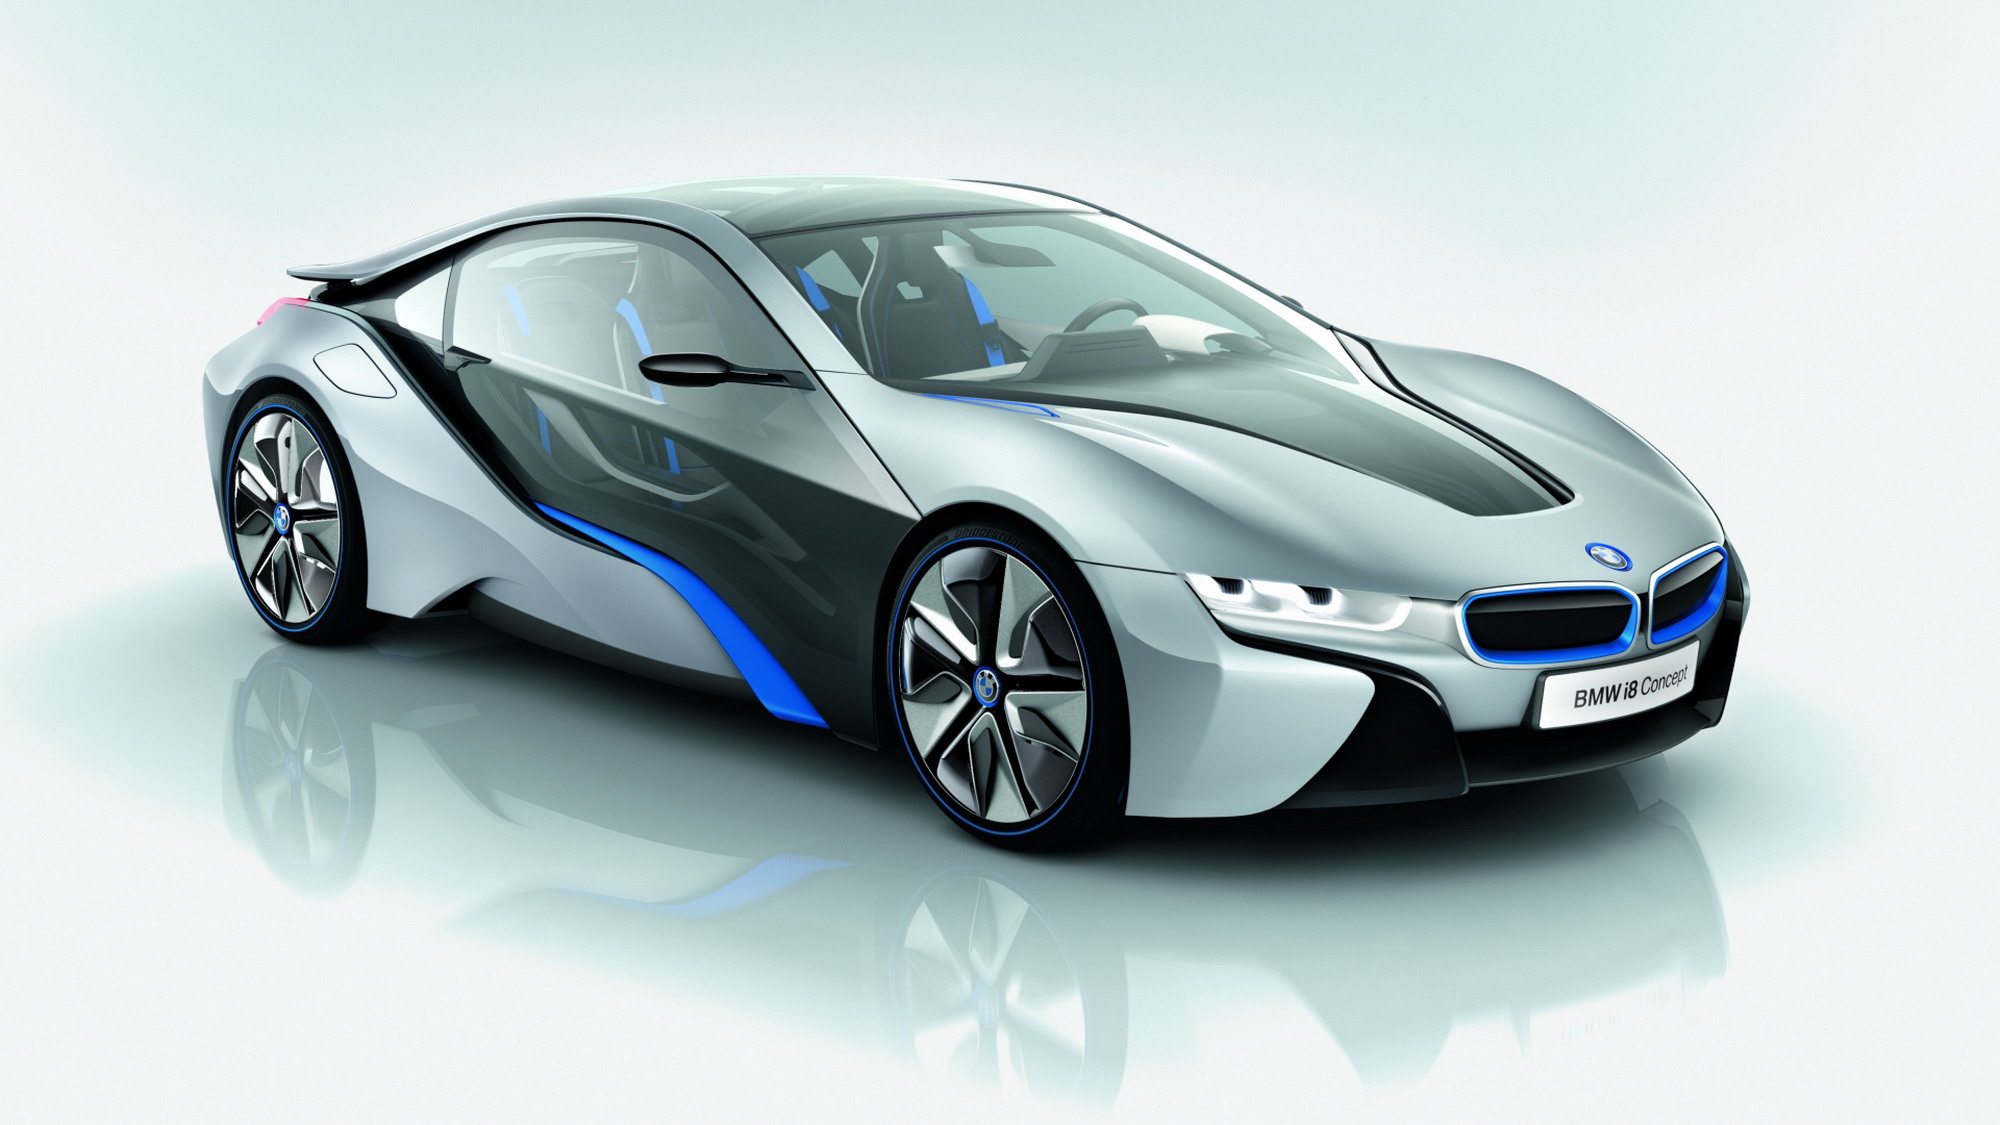 BMW i8 Concept is the Best Choice for New Generation